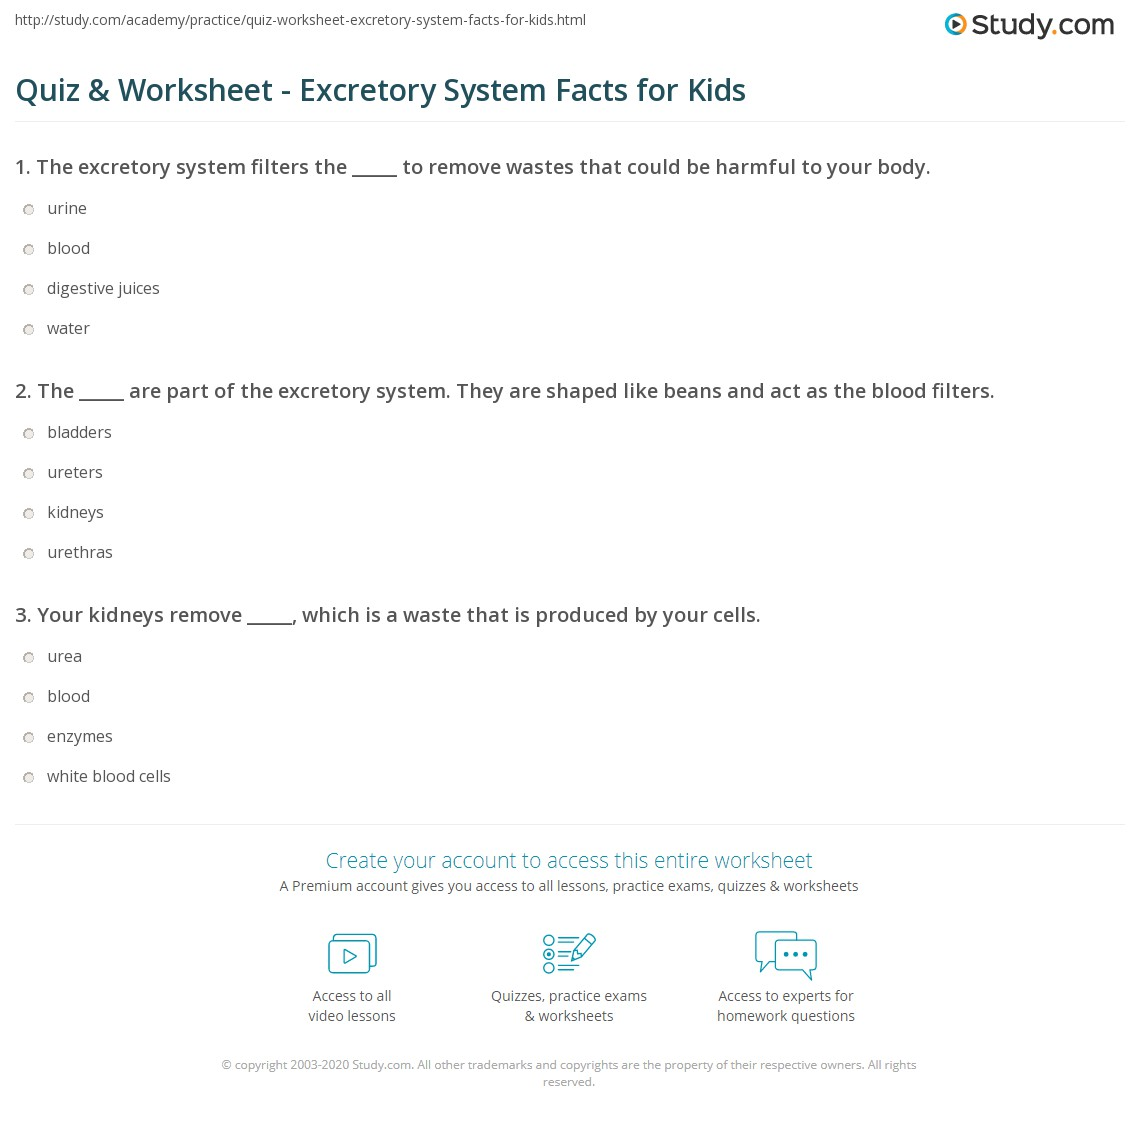 Worksheets 9th Grade Earth Science Worksheets 9th grade earth science worksheets sharebrowse collection of sharebrowse